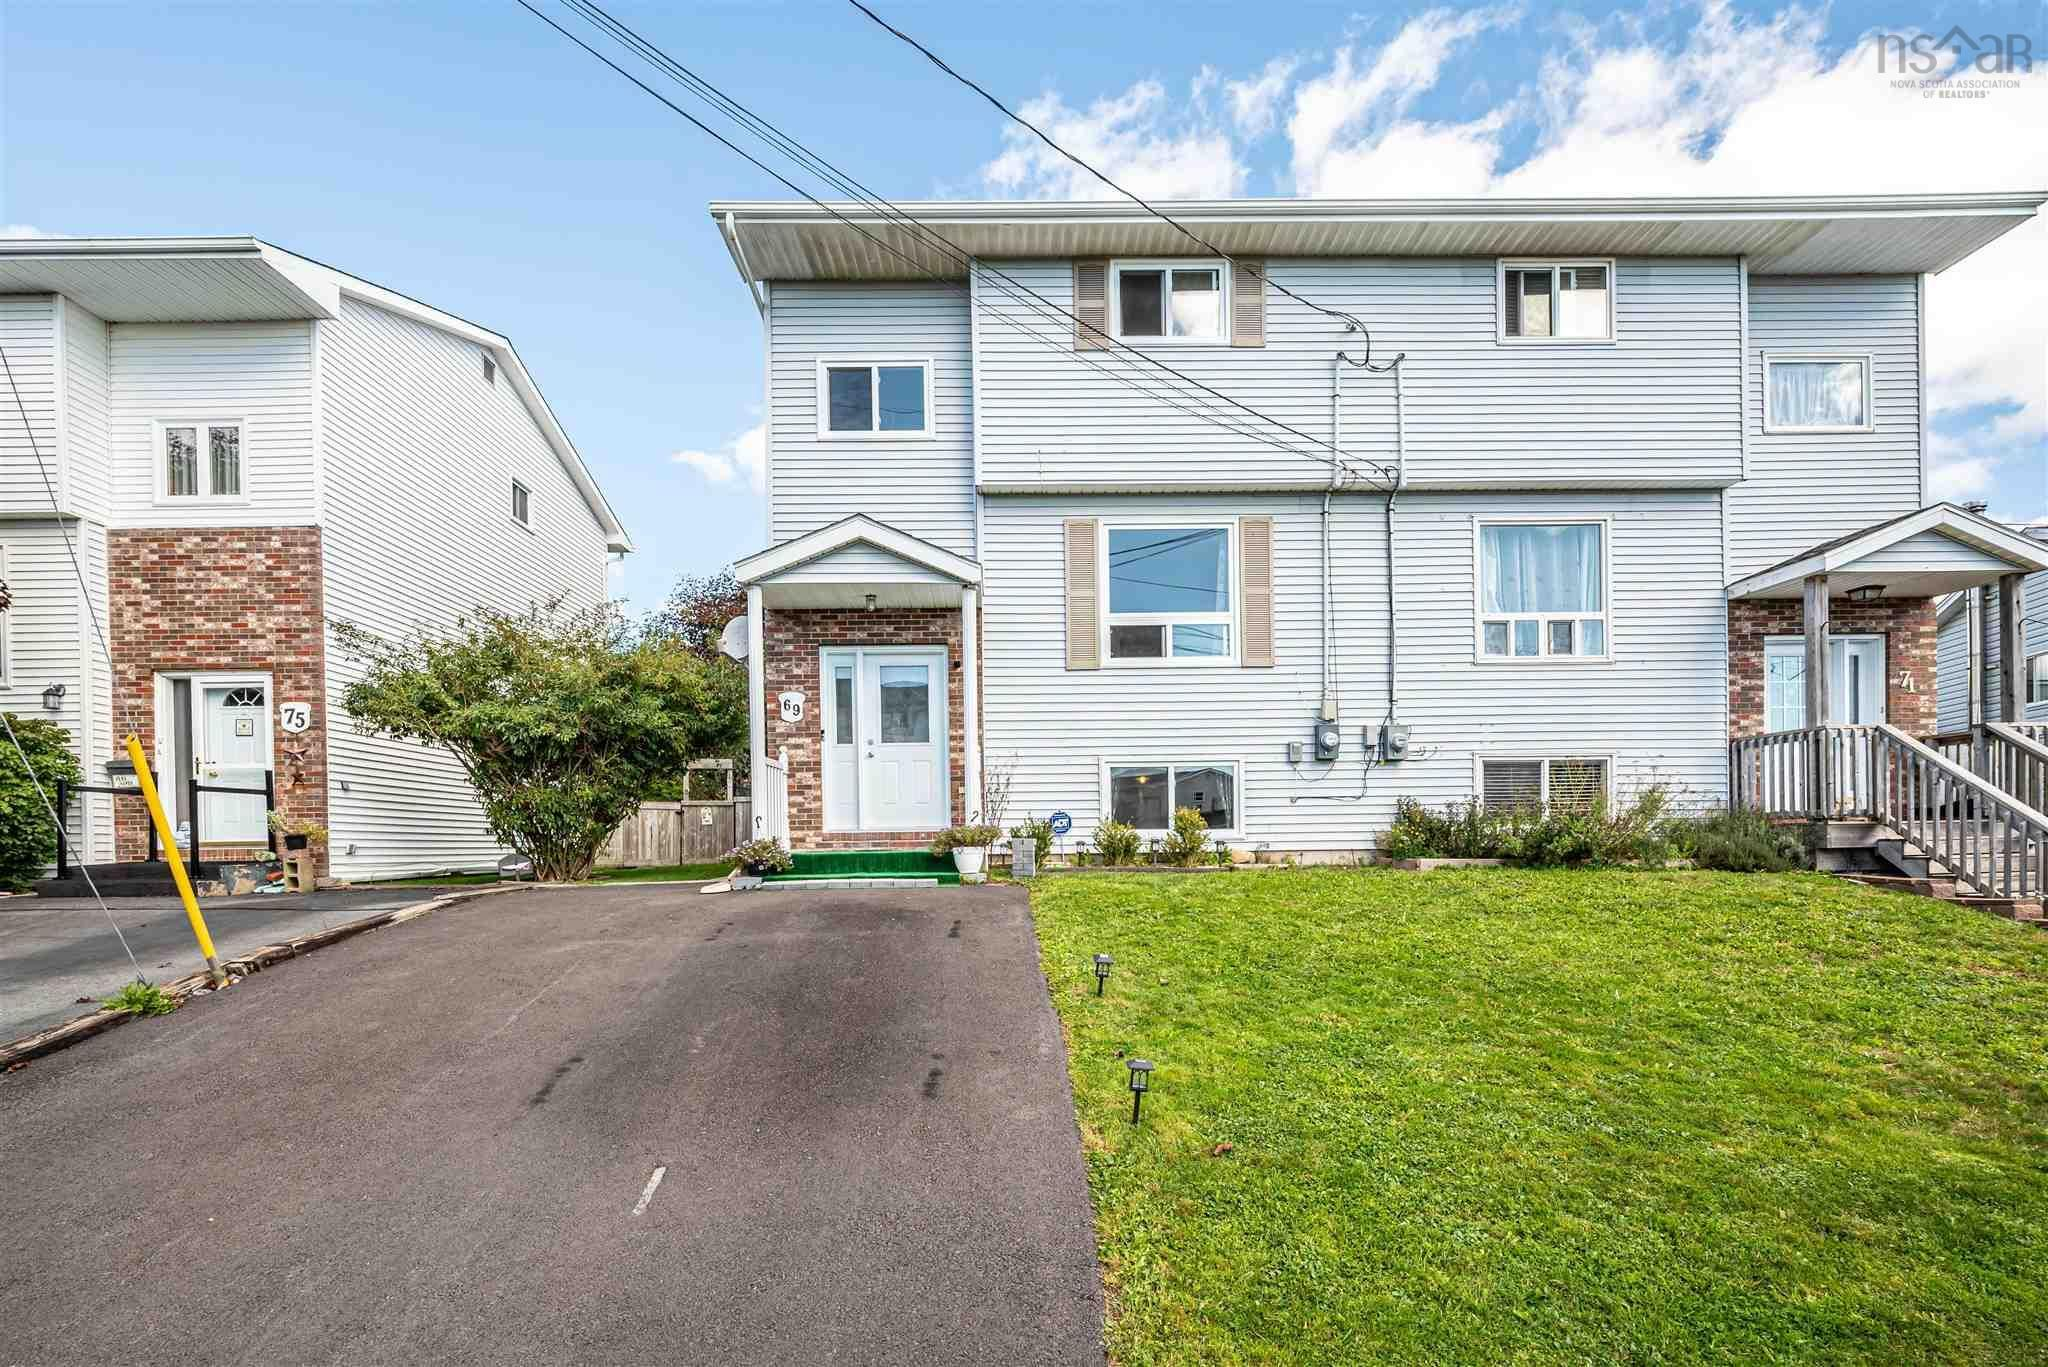 Main Photo: 69 Cannon Crescent in Eastern Passage: 11-Dartmouth Woodside, Eastern Passage, Cow Bay Residential for sale (Halifax-Dartmouth)  : MLS®# 202125718